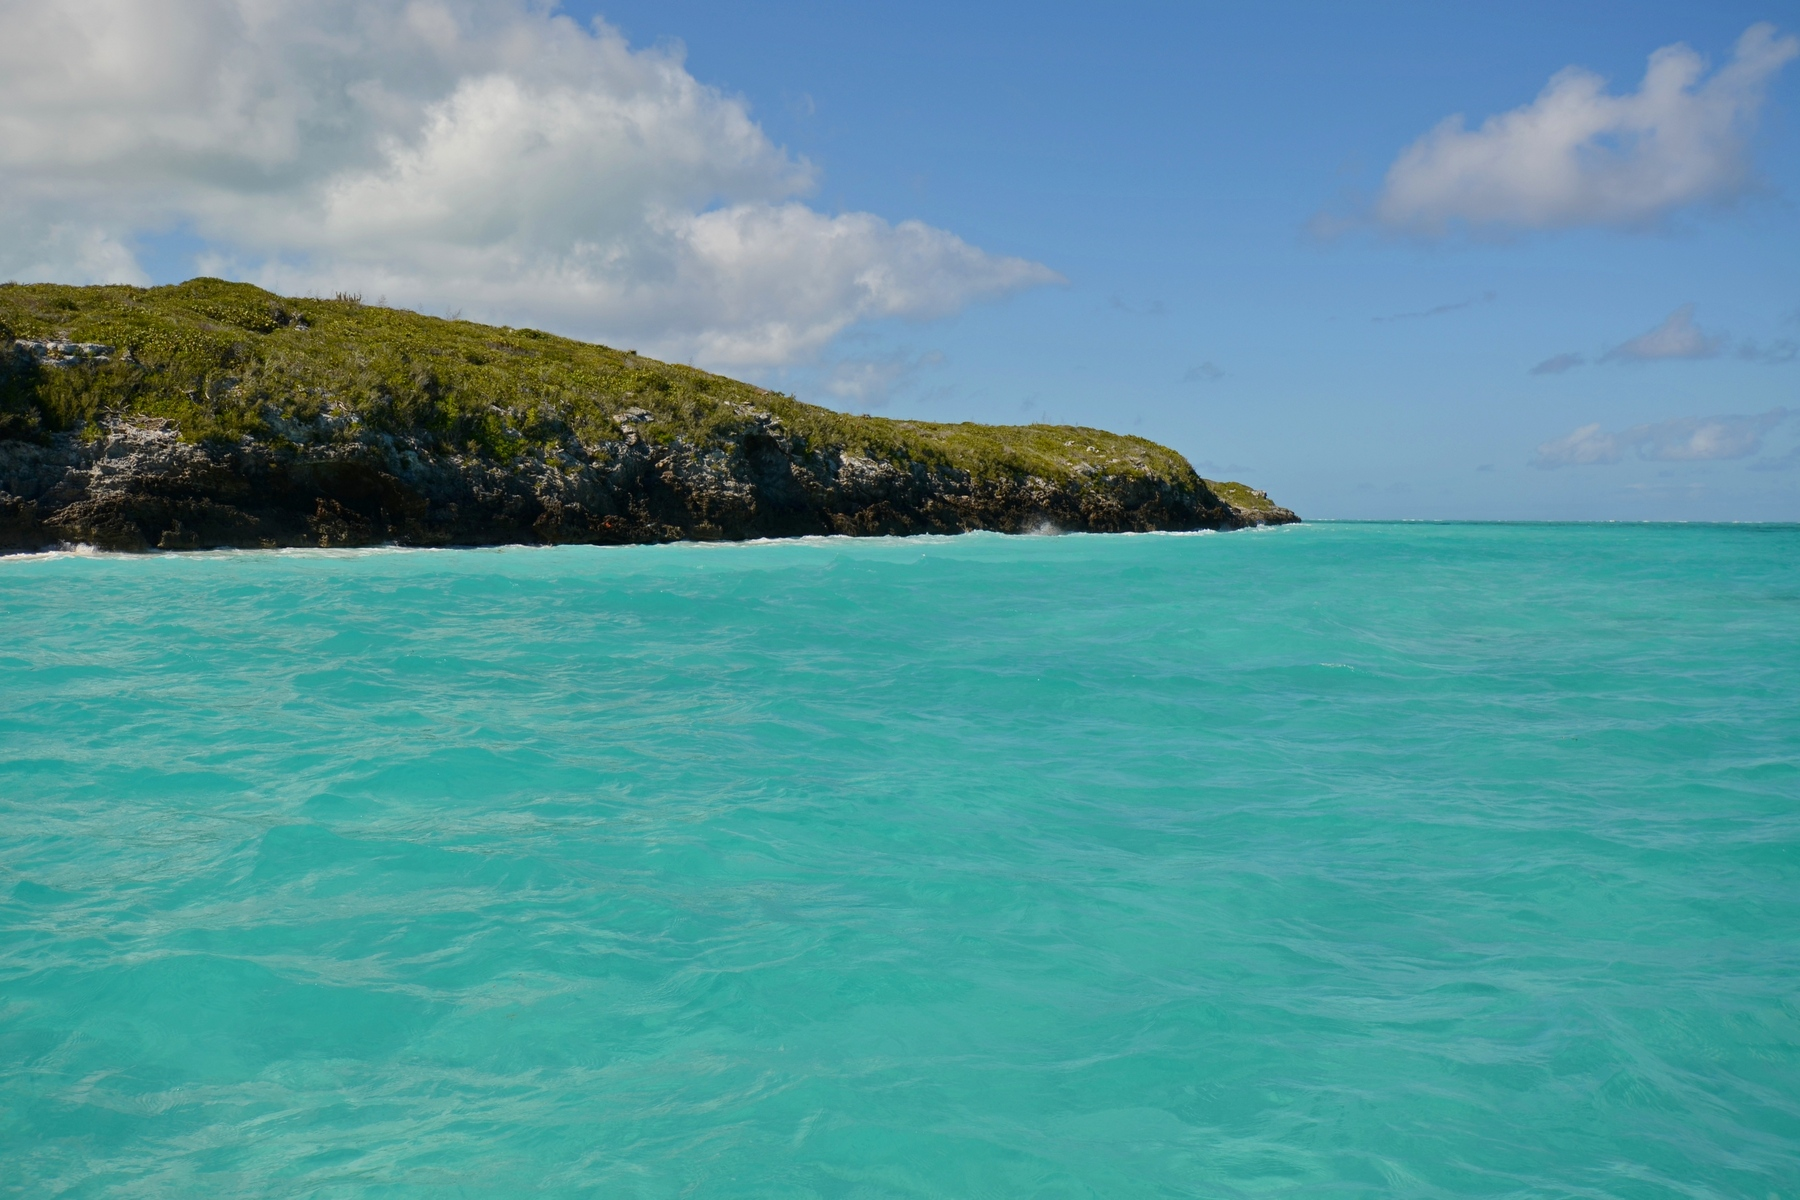 Land for Sale at Pumpkin Bluff - Whitby Pumpkin Bluff, Turks And Caicos Islands